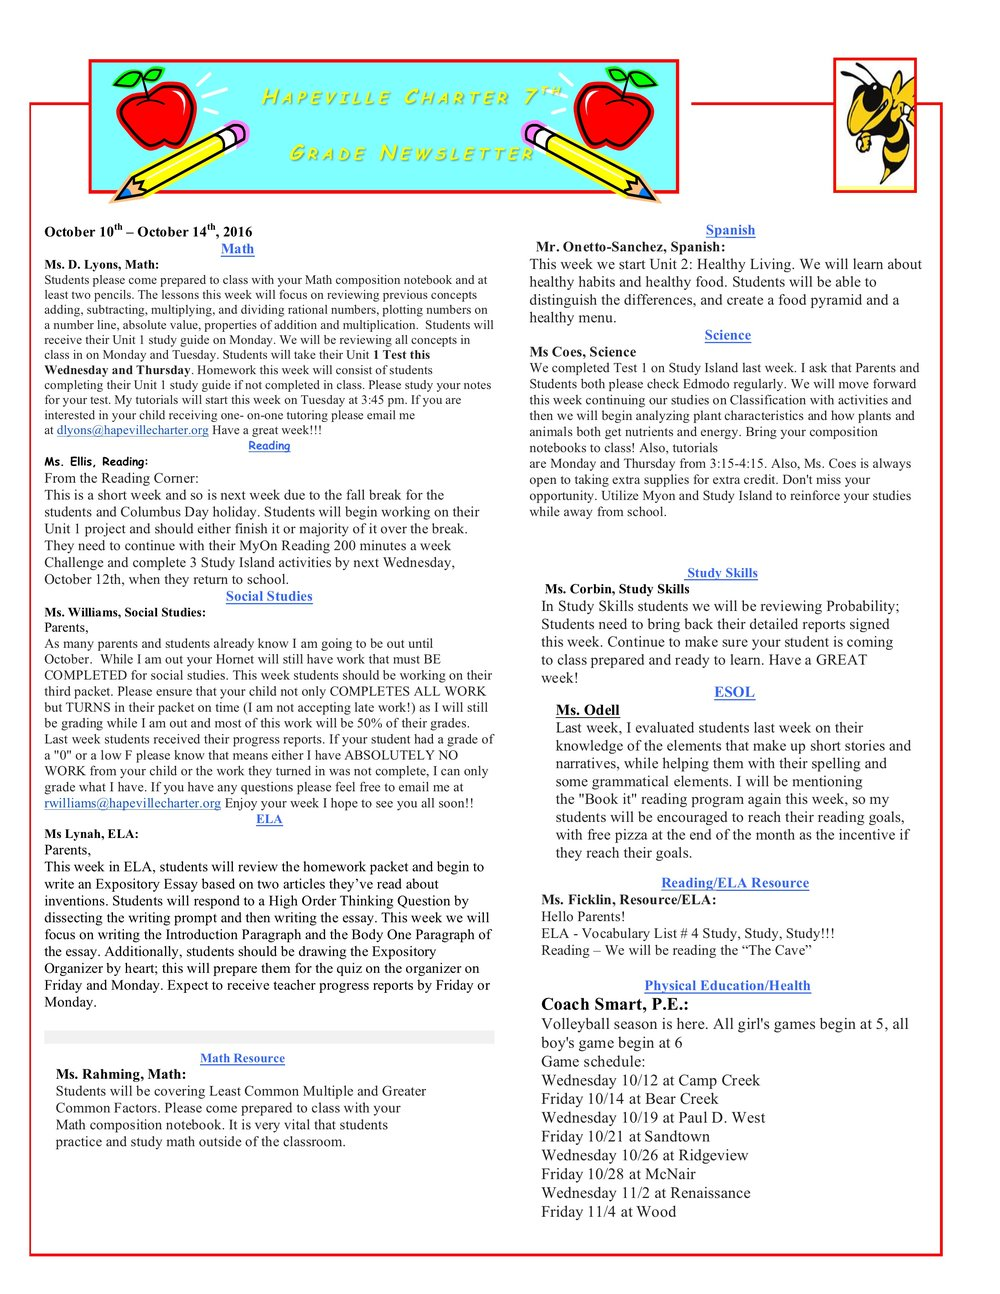 Newsletter Image7th Grade Newsletter 10.10.2016 .jpeg